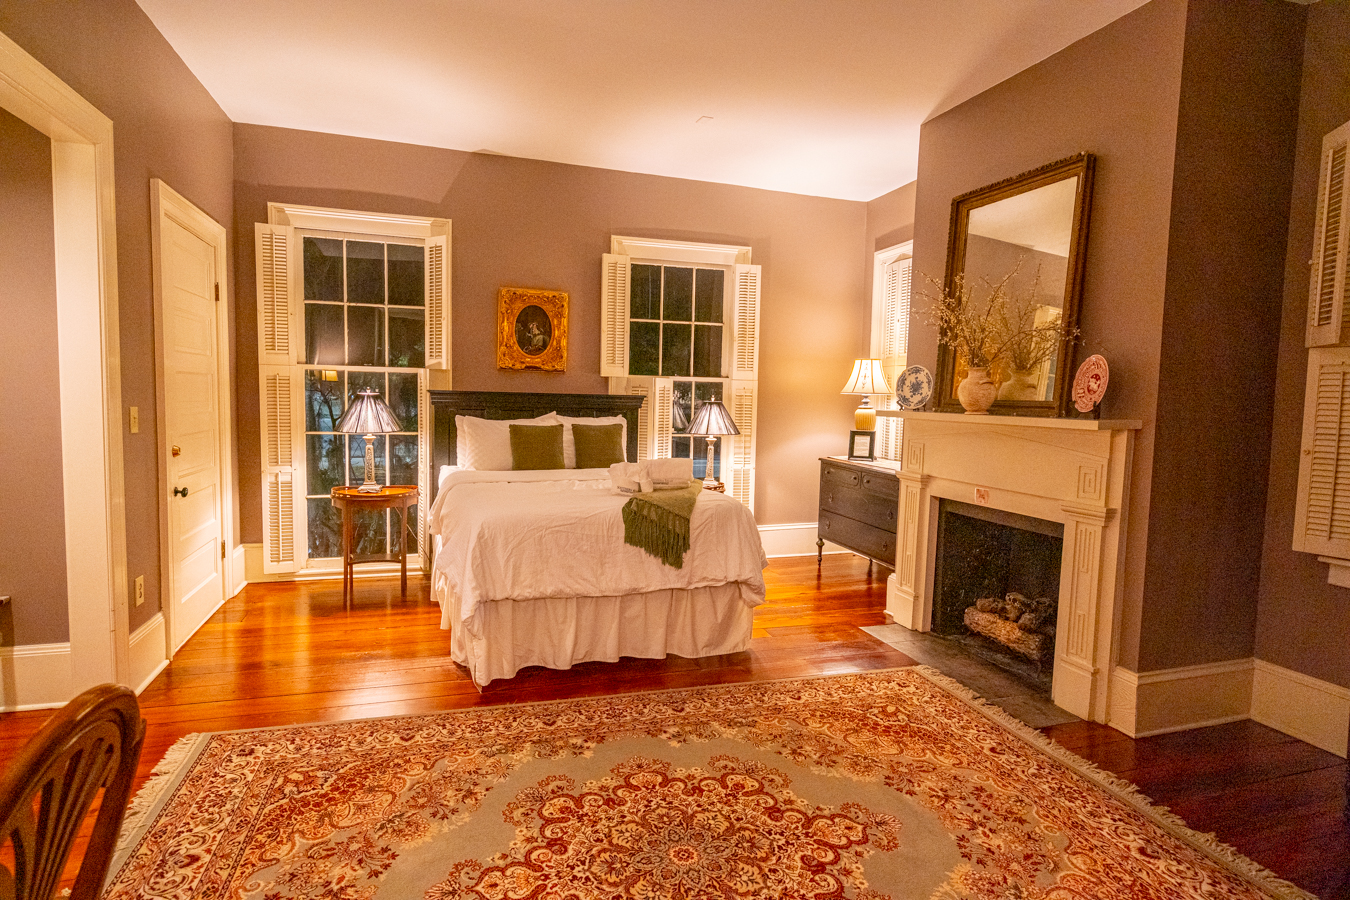 bedroom of bird baldwin house in savannah -- learning how to use airbnb and airbnb guest tips can help you stay places like this